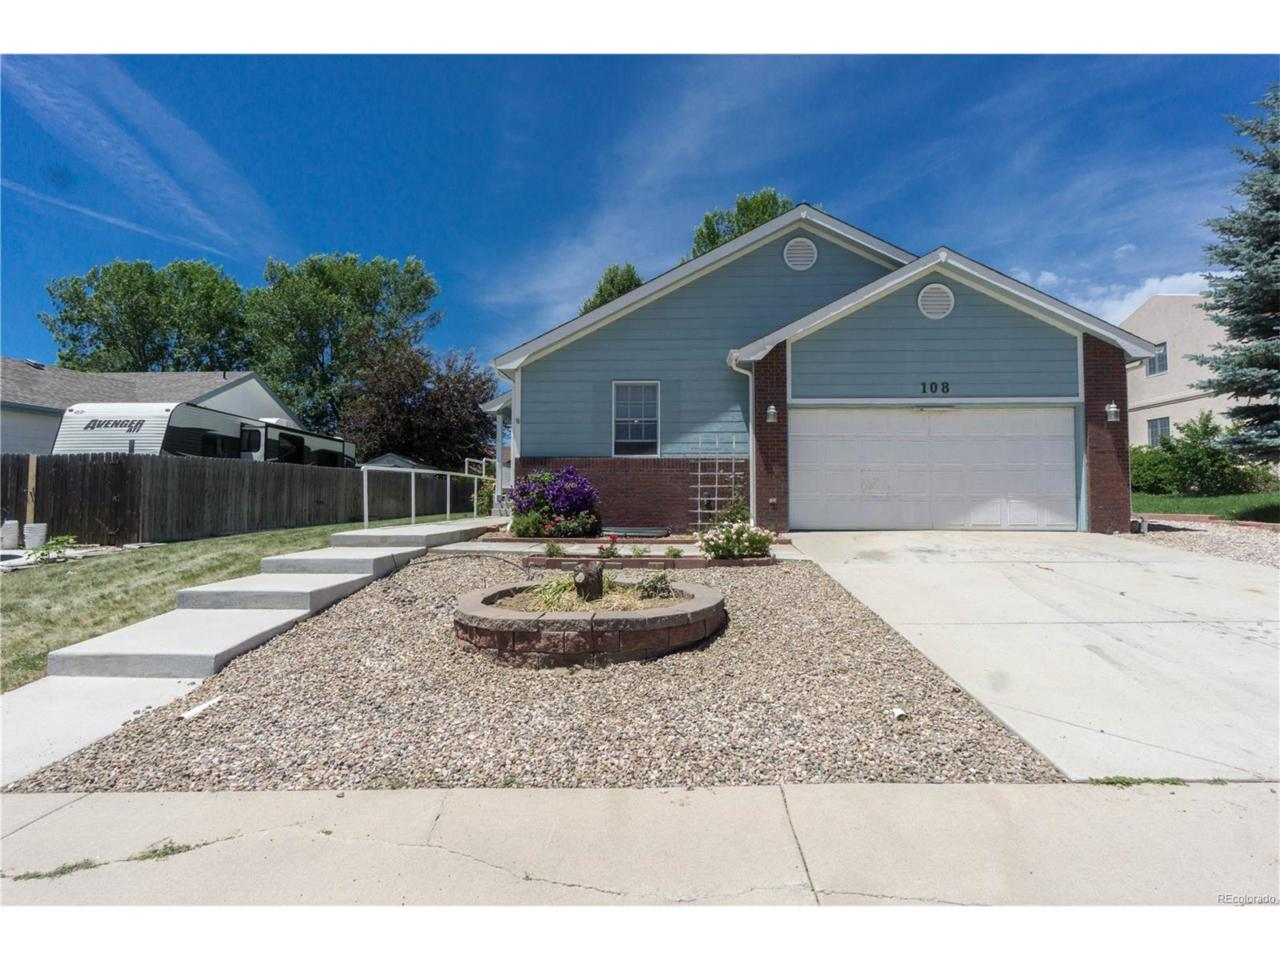 108 Phyllis Avenue, Johnstown, CO 80534 (MLS #4104933) :: 8z Real Estate